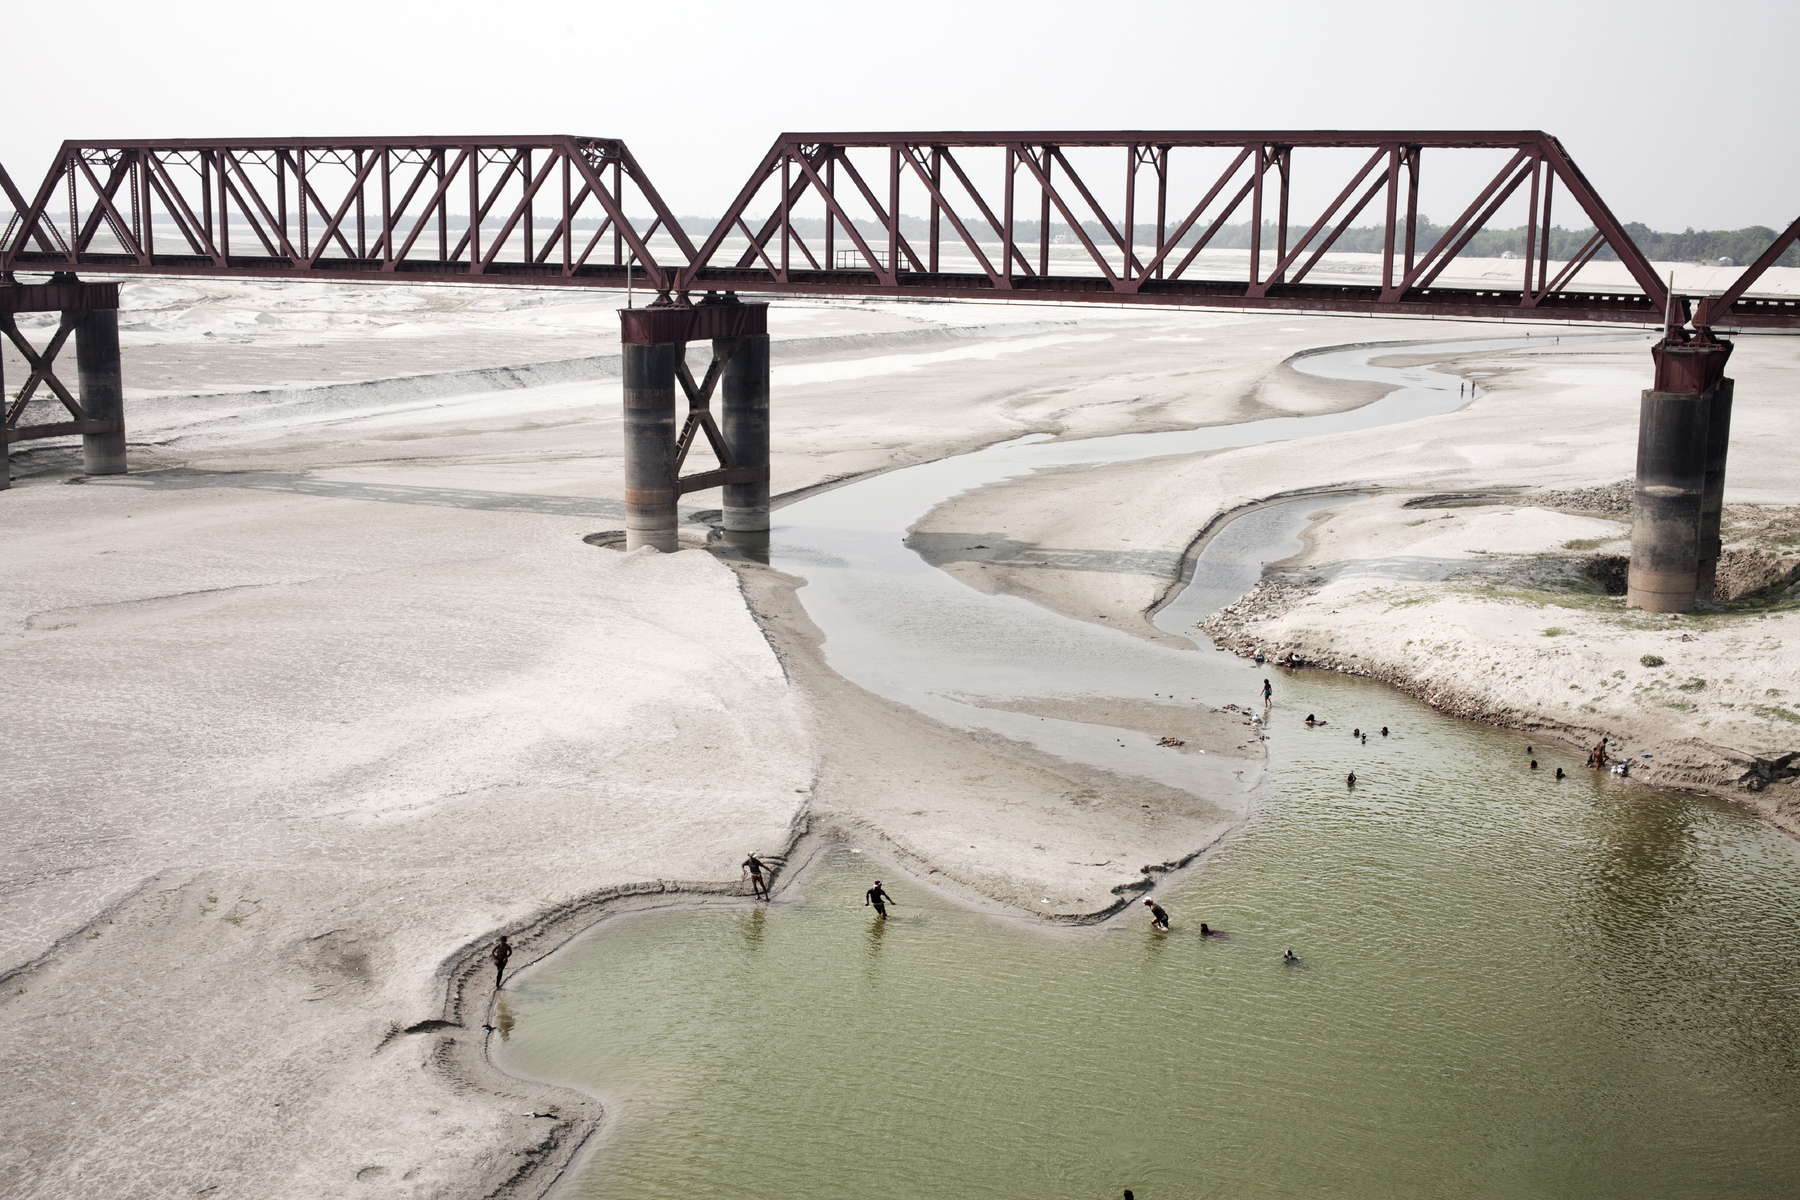 every year, during the dry season, the Ganges waters on the Bangladesh Border drys up due to the farakka Dam beeing closed on the Indian border, March 2014